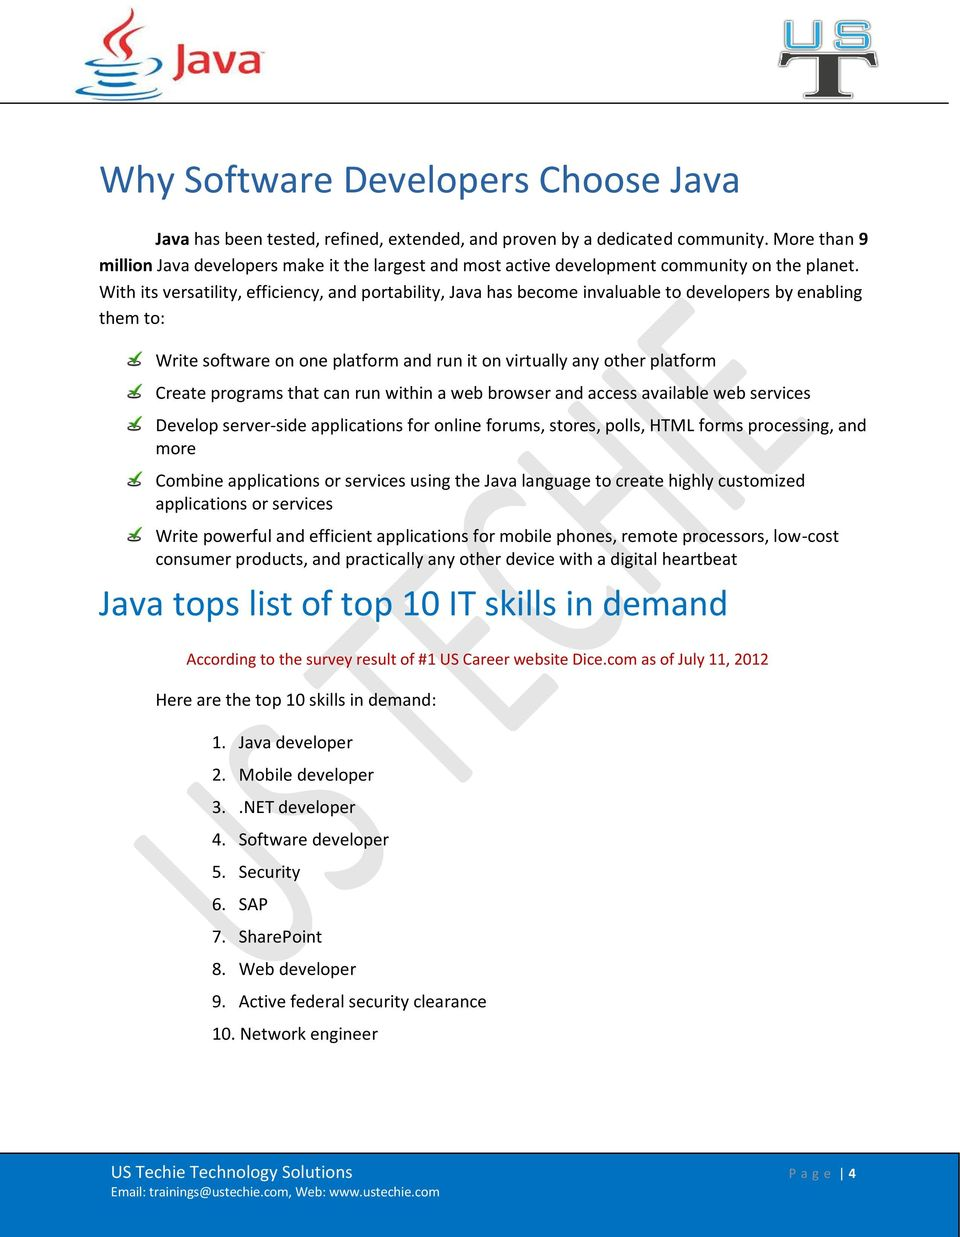 With its versatility, efficiency, and portability, Java has become invaluable to developers by enabling them to: Write software on one platform and run it on virtually any other platform Create